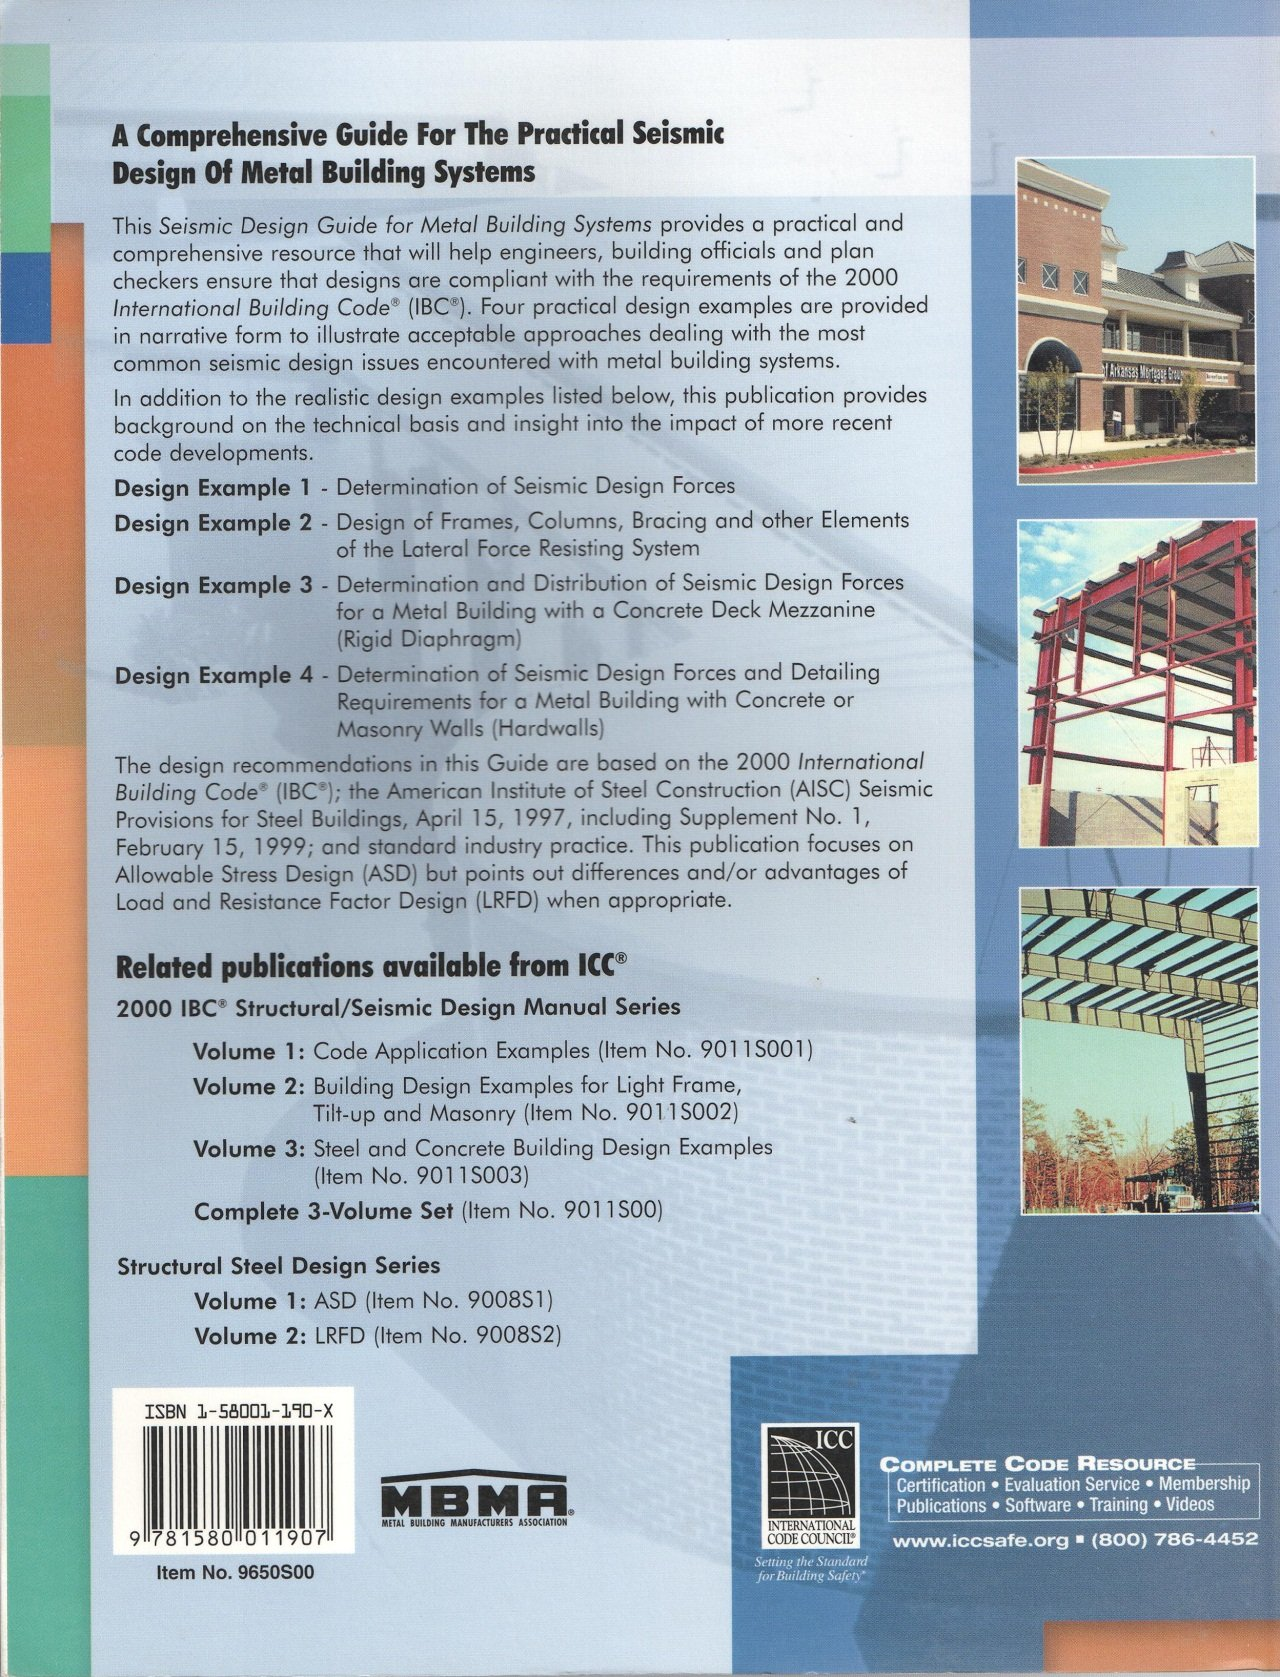 Seismic Design Guide for Metal Building Systems based on 2000 IBC: Drake,  Johnson, Murray Bachman: 9781580011907: Amazon.com: Books